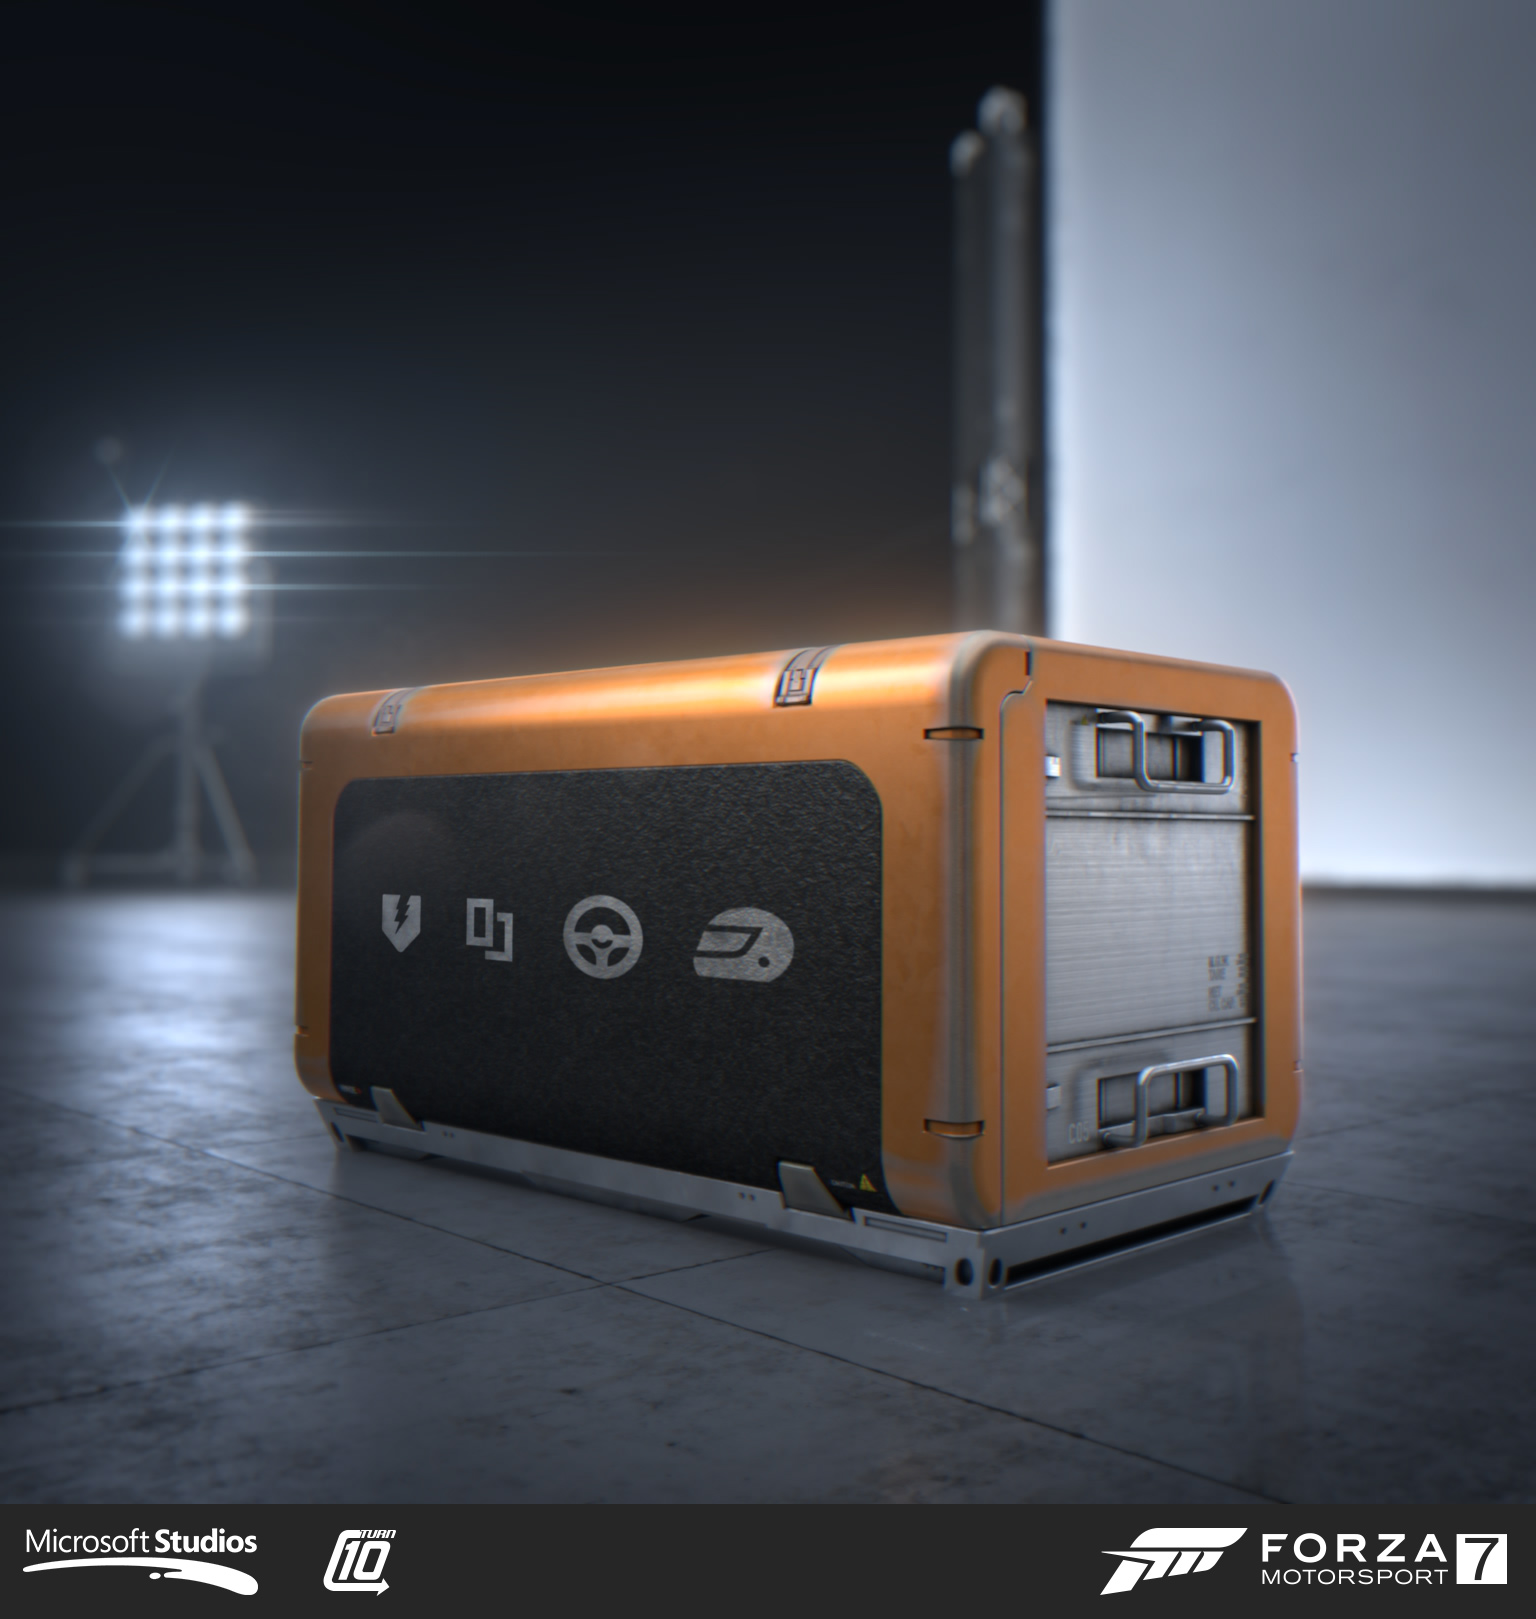 Prize crate created for Forza Motorsport 7. I concepted, modeled, textured and animated the crate. Art direction from David Heutmaker, Nic Johnson and Scott Lee. Rendering and additional materials & animation from Goldtooth Creative.